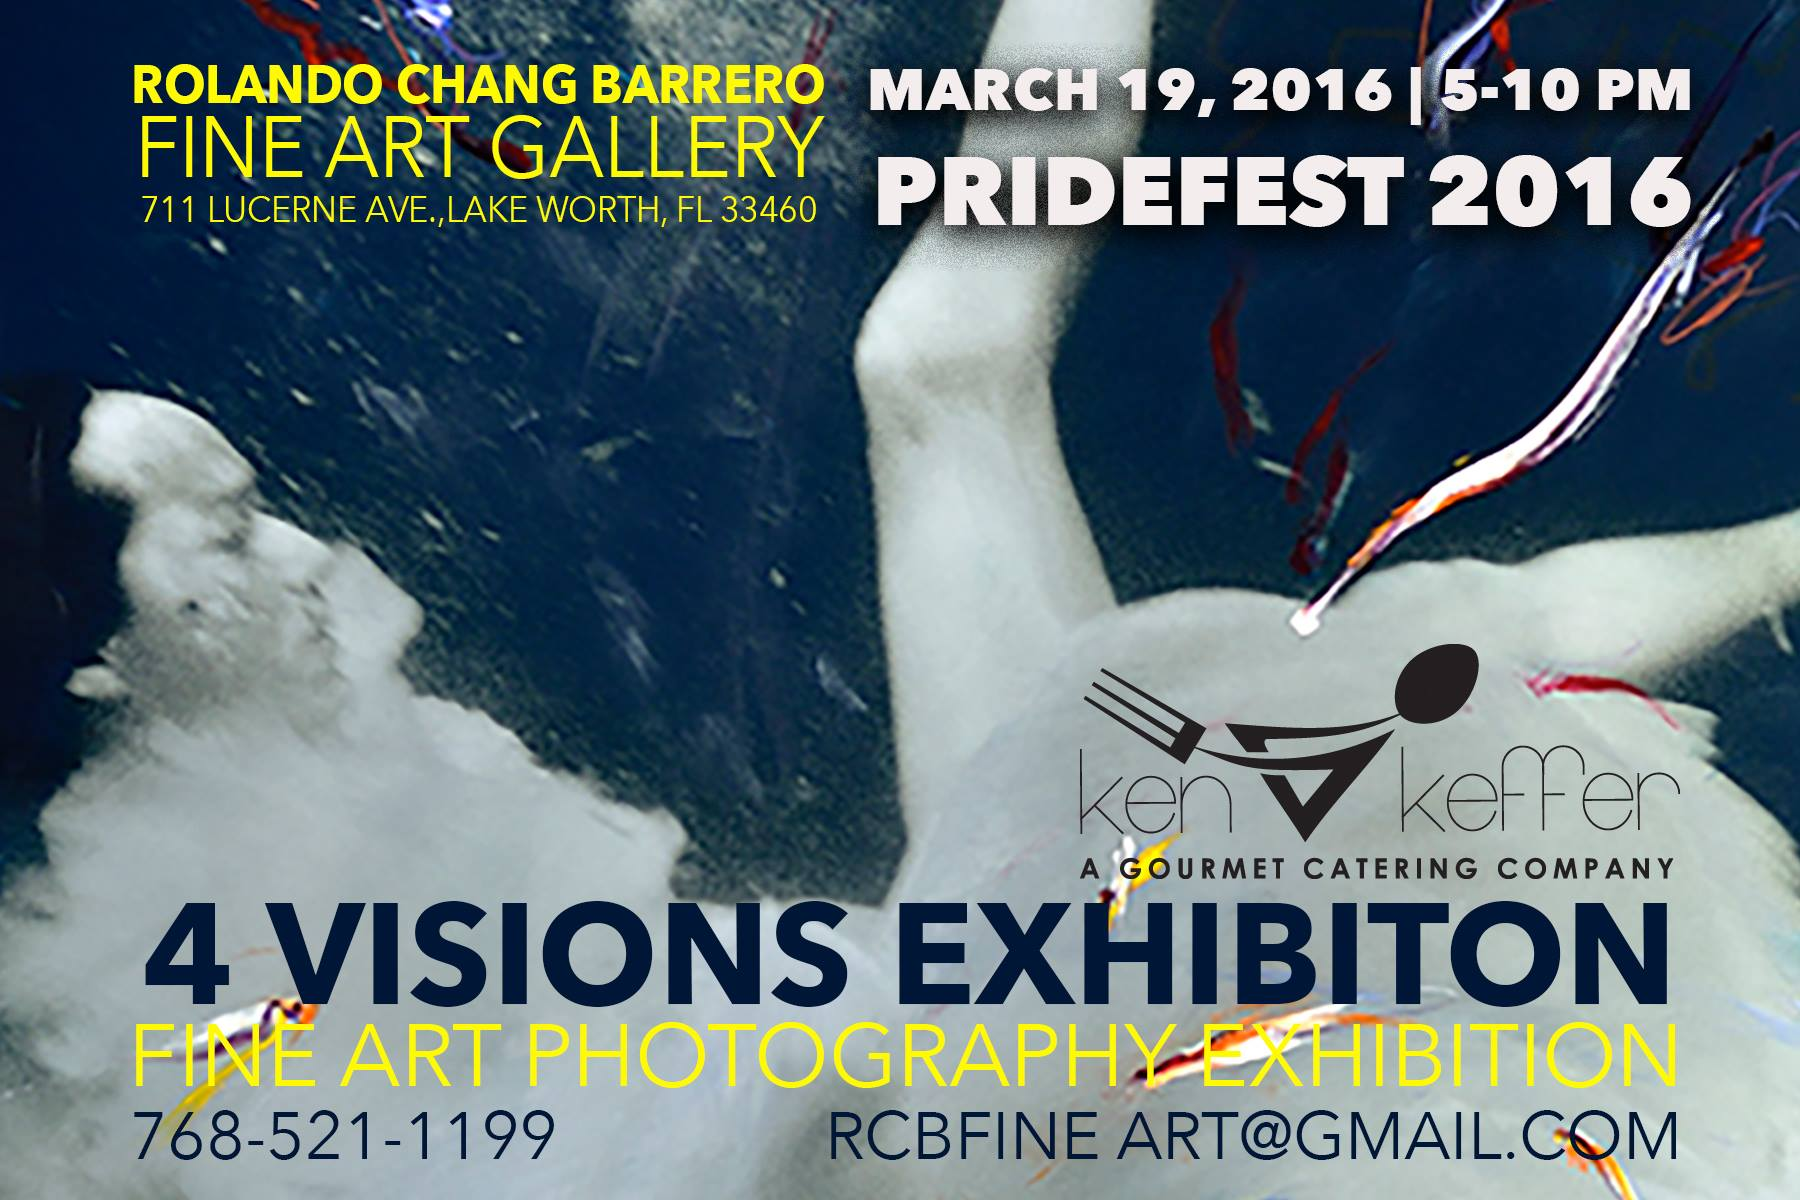 4 Visions Exhibition